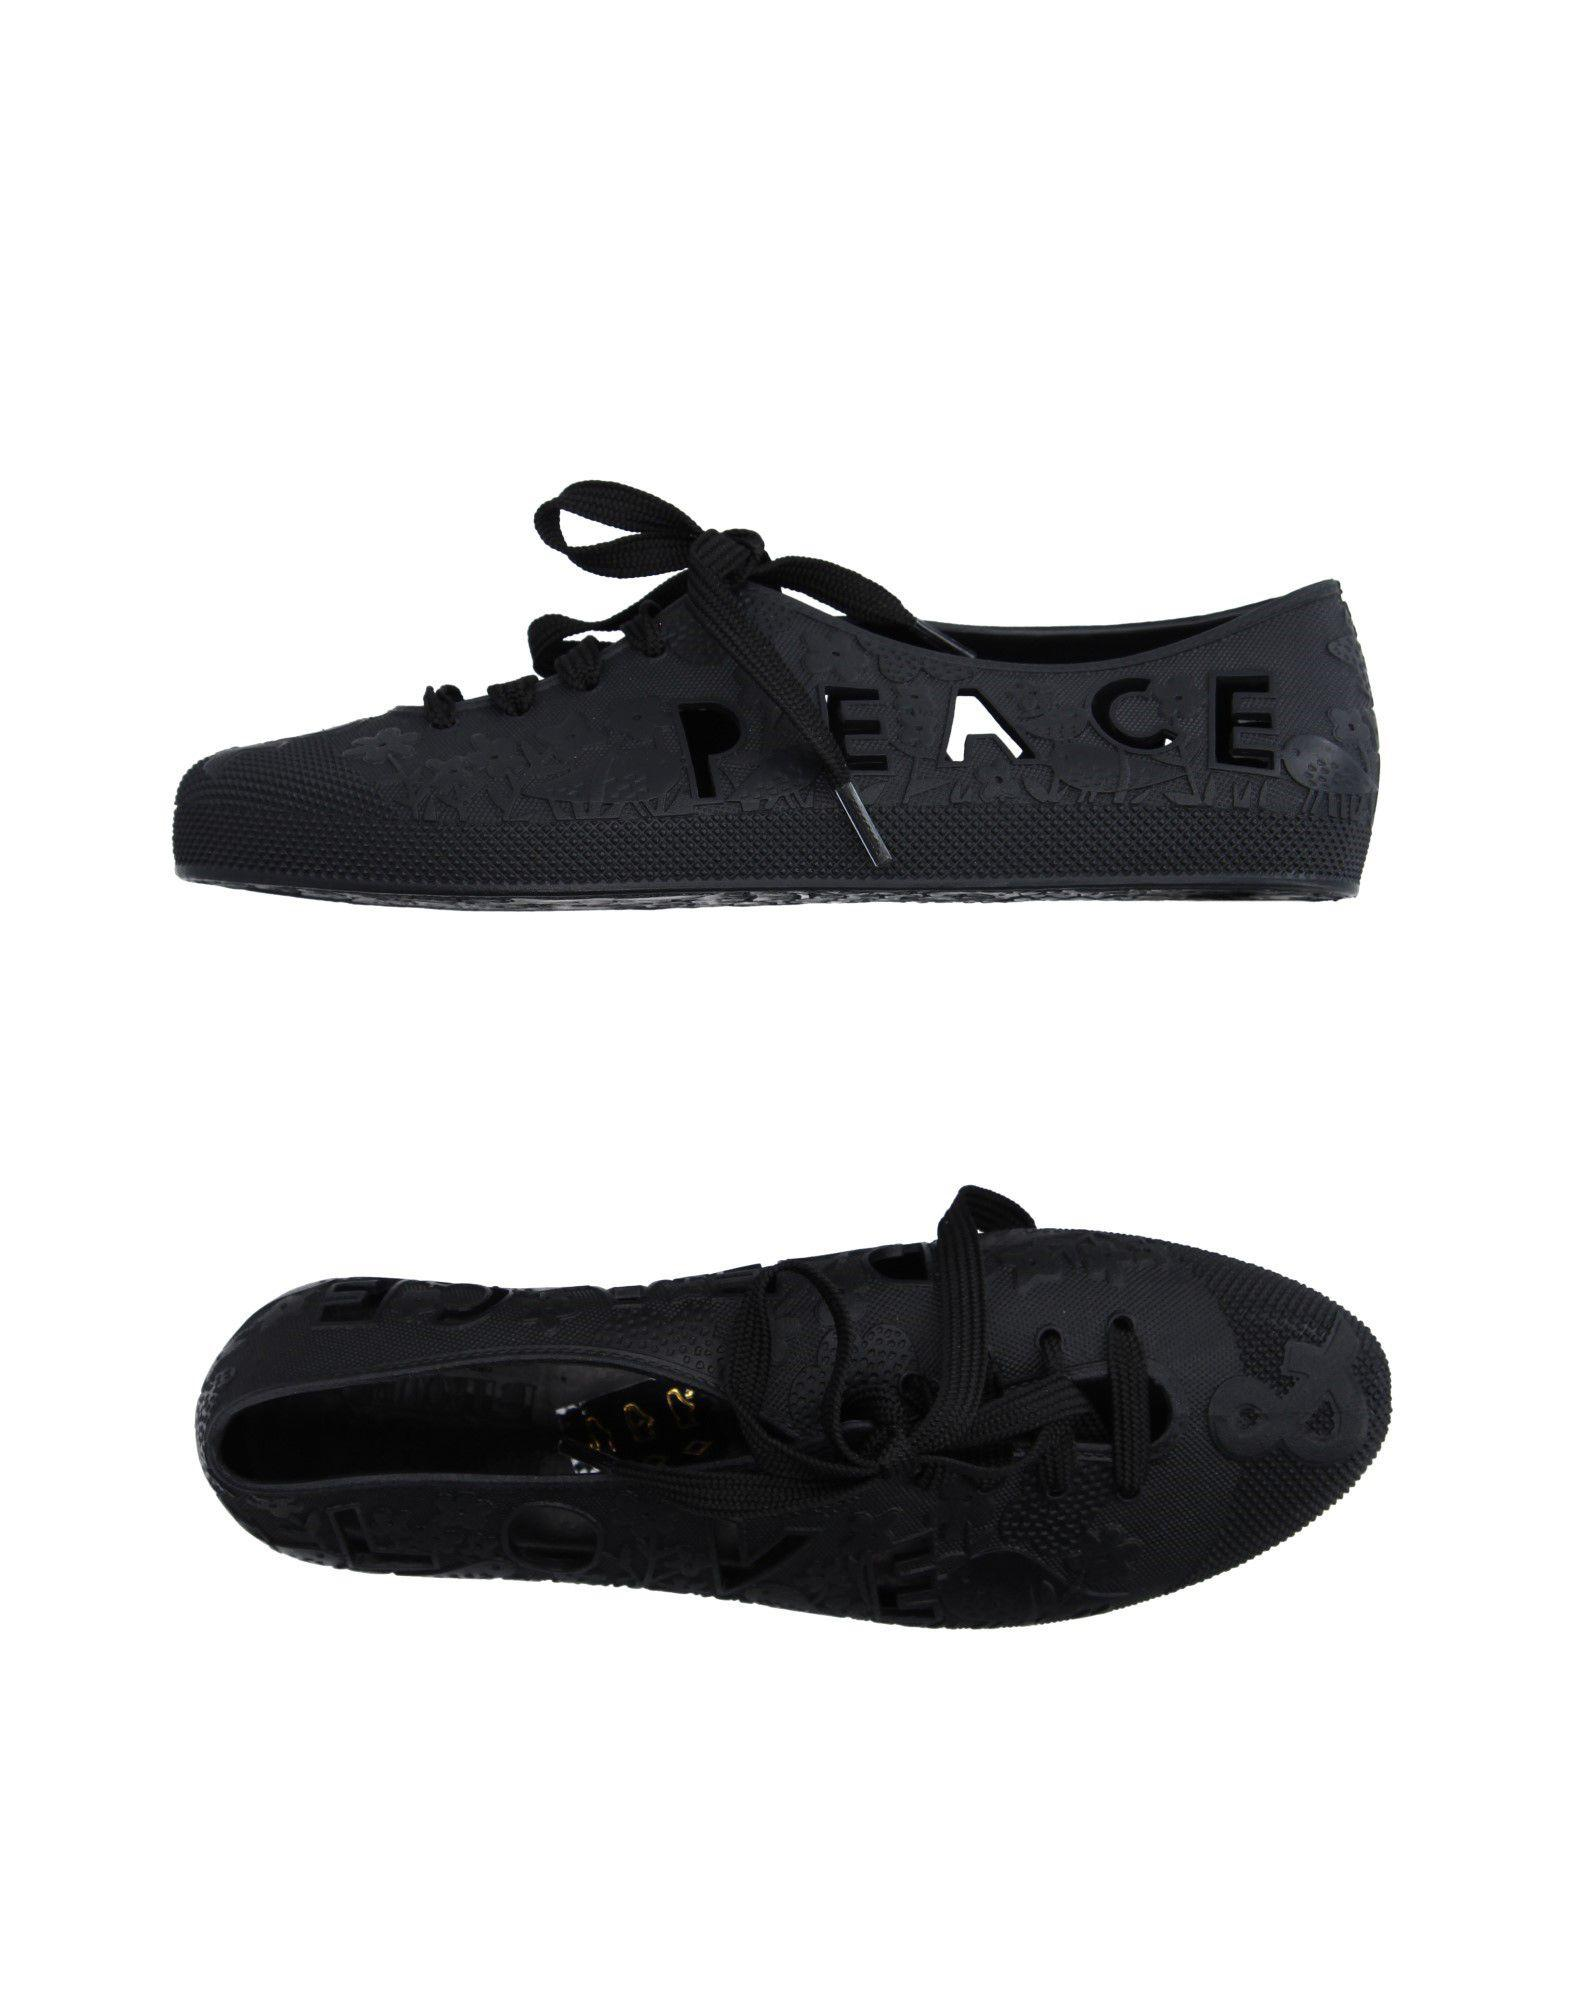 FOOTWEAR - Lace-up shoes on YOOX.COM Katy Ur8guc18a